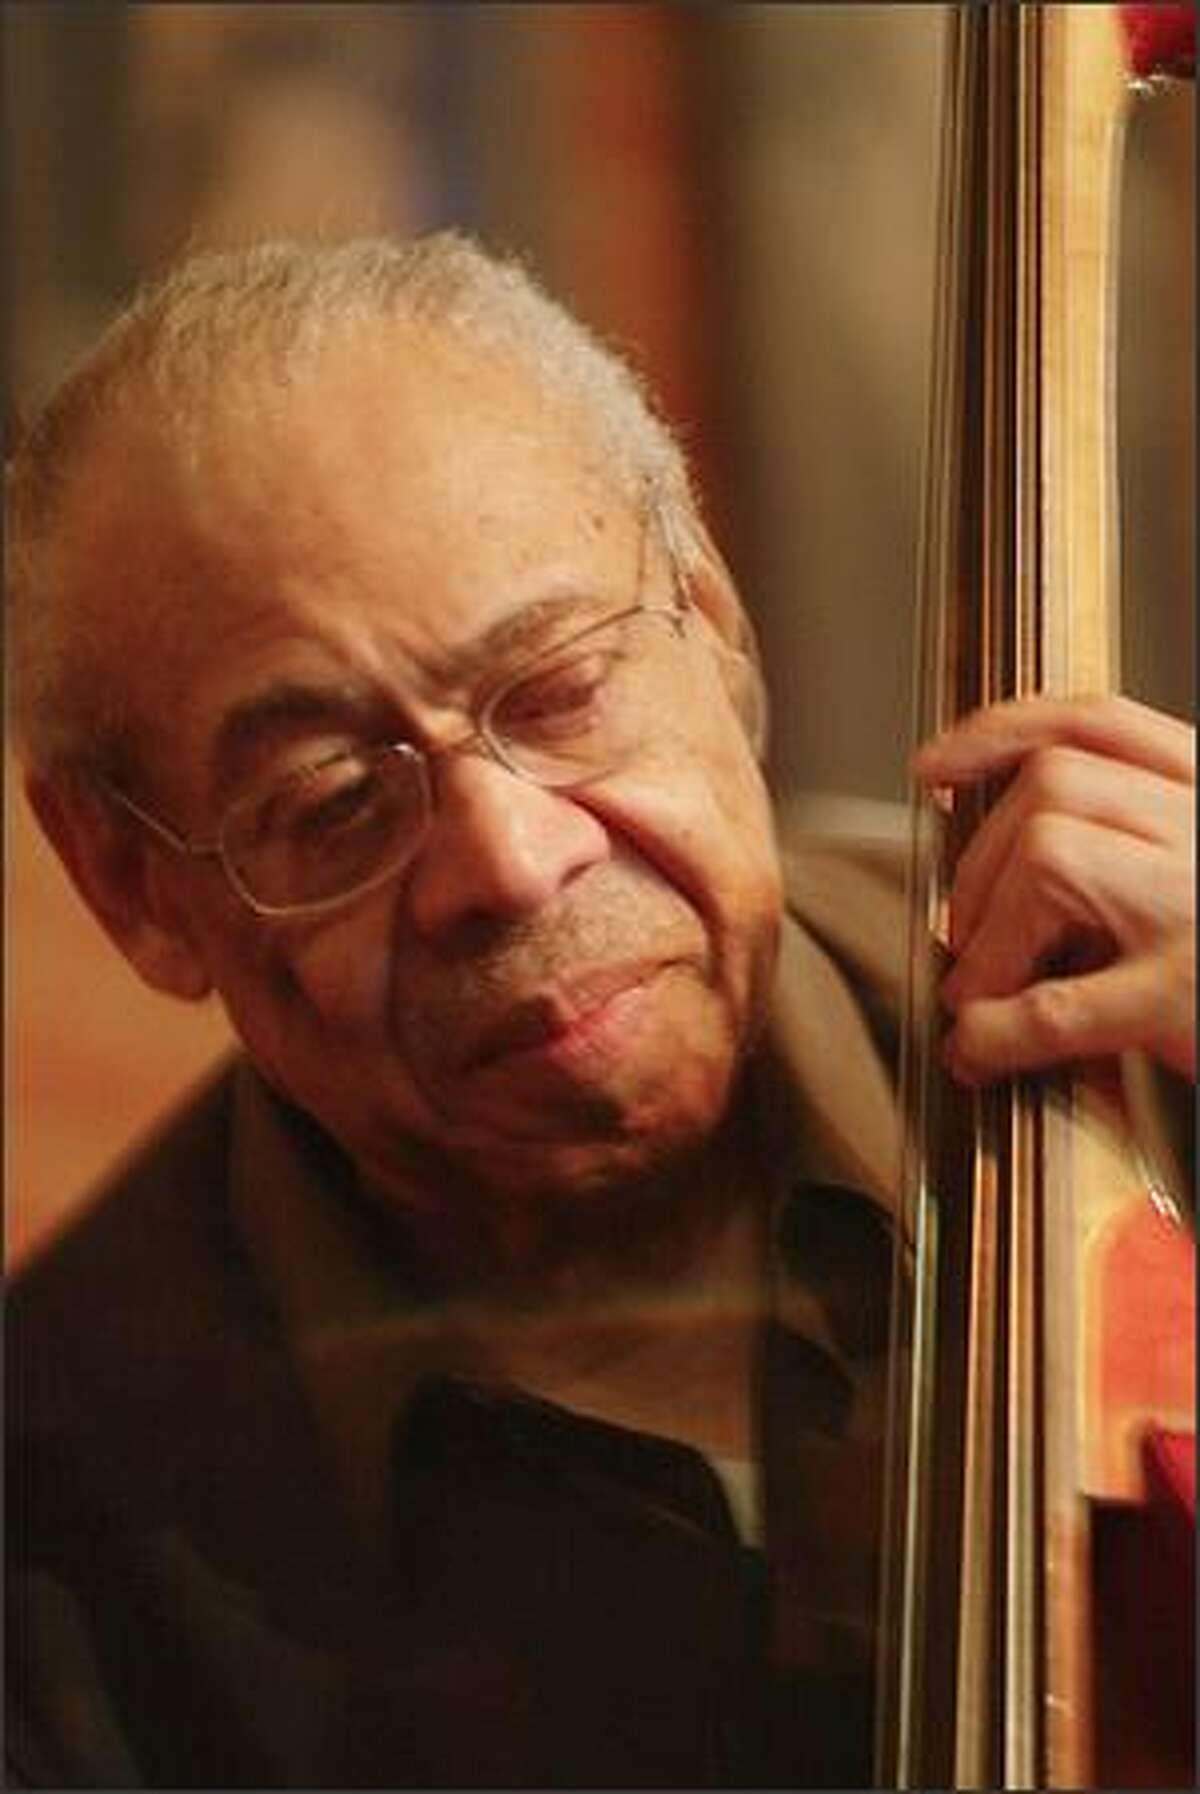 Buddy Catlett has traveled the world with outstanding musicians such as Count Basie, but at 75 calls Seattle home again.